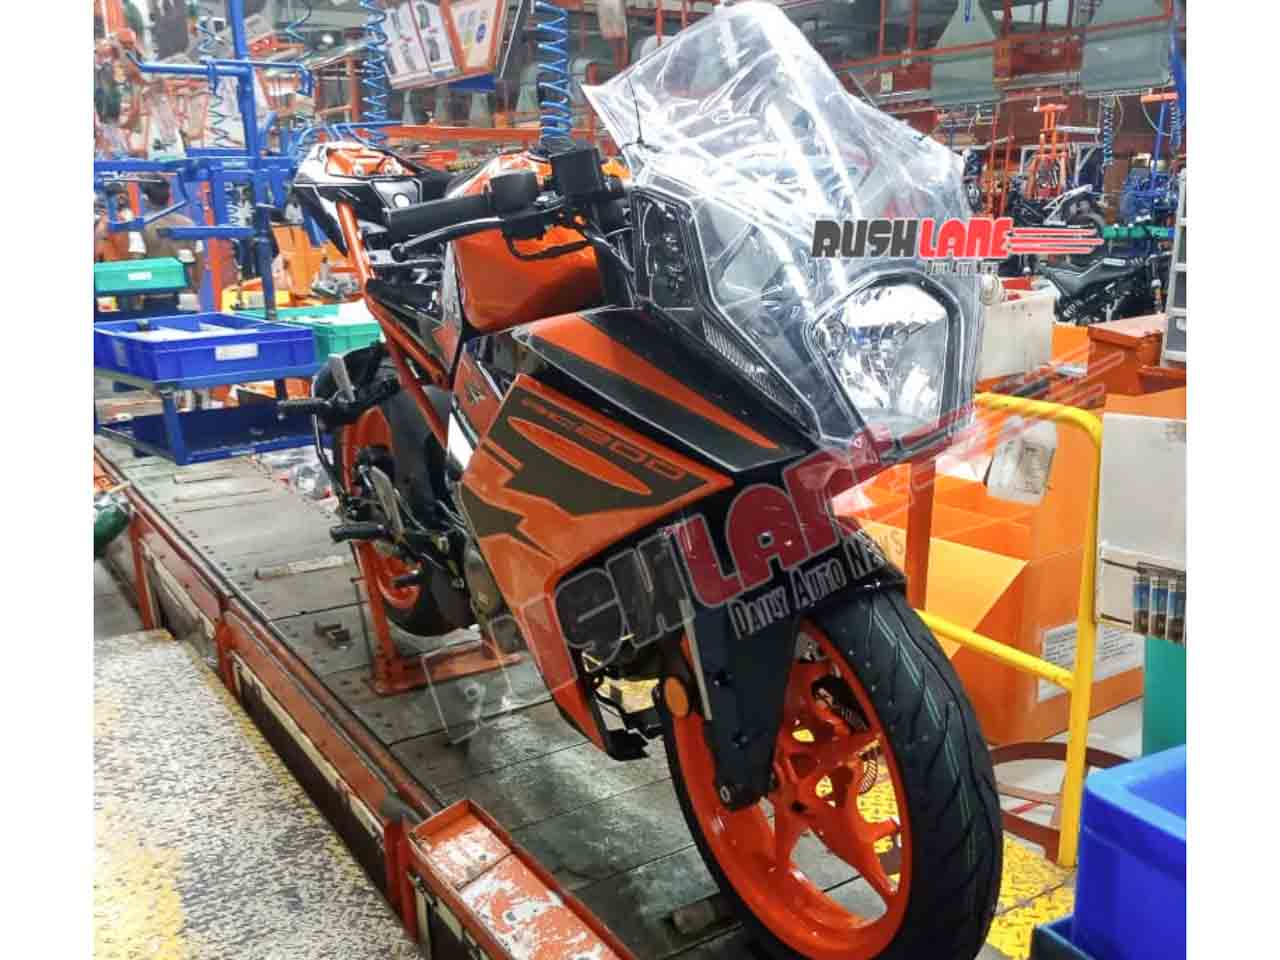 2021 Ktm Rc 200 Enters Production Spied Undisguised For First Time